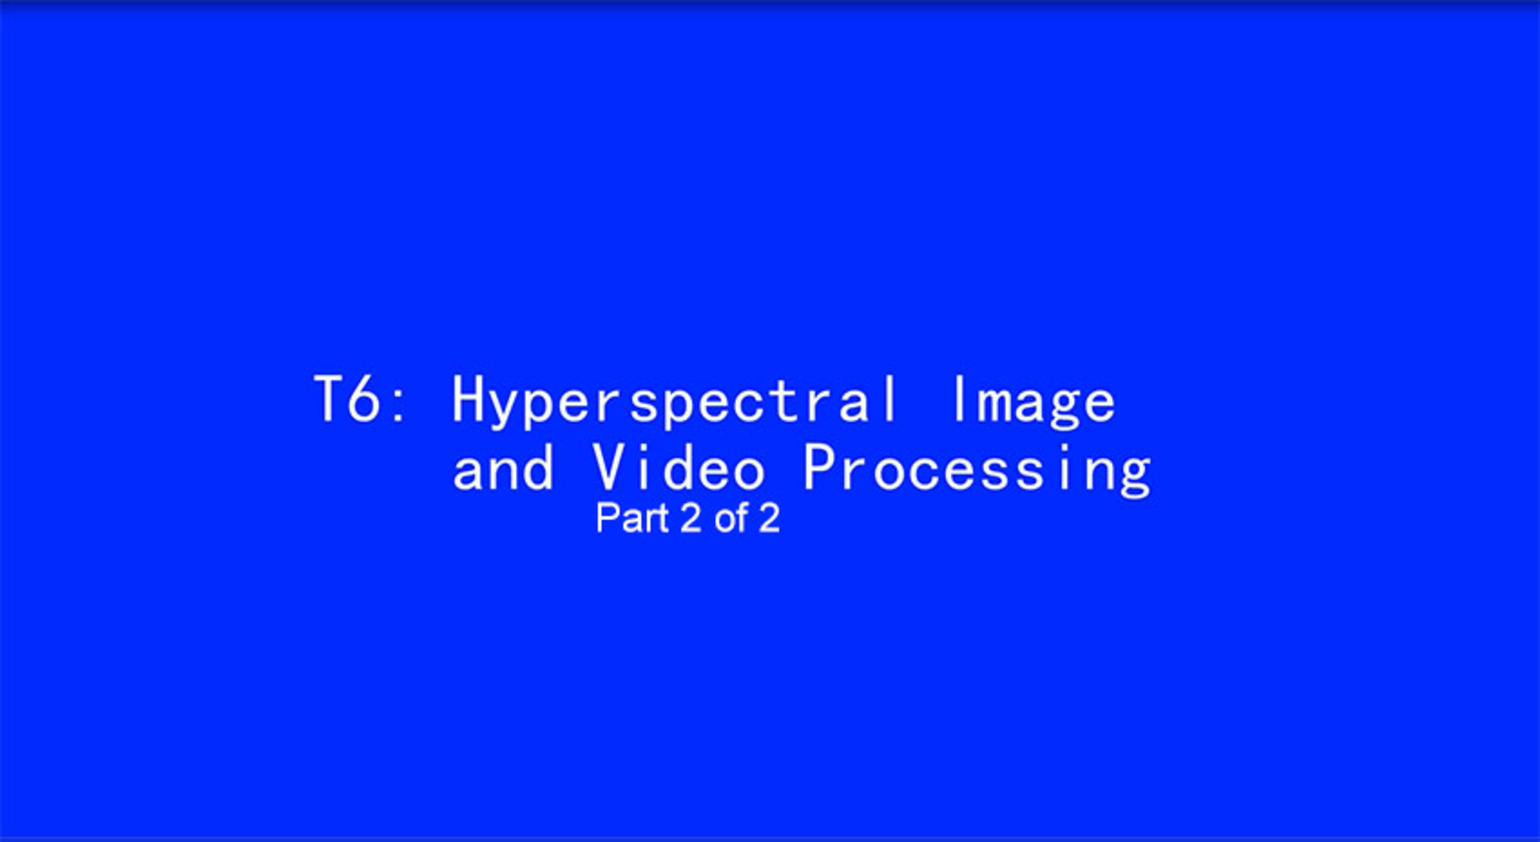 ICIP 2017 Tutorial - Hyperspectral Image and Video Processing [Part 2 of 2]